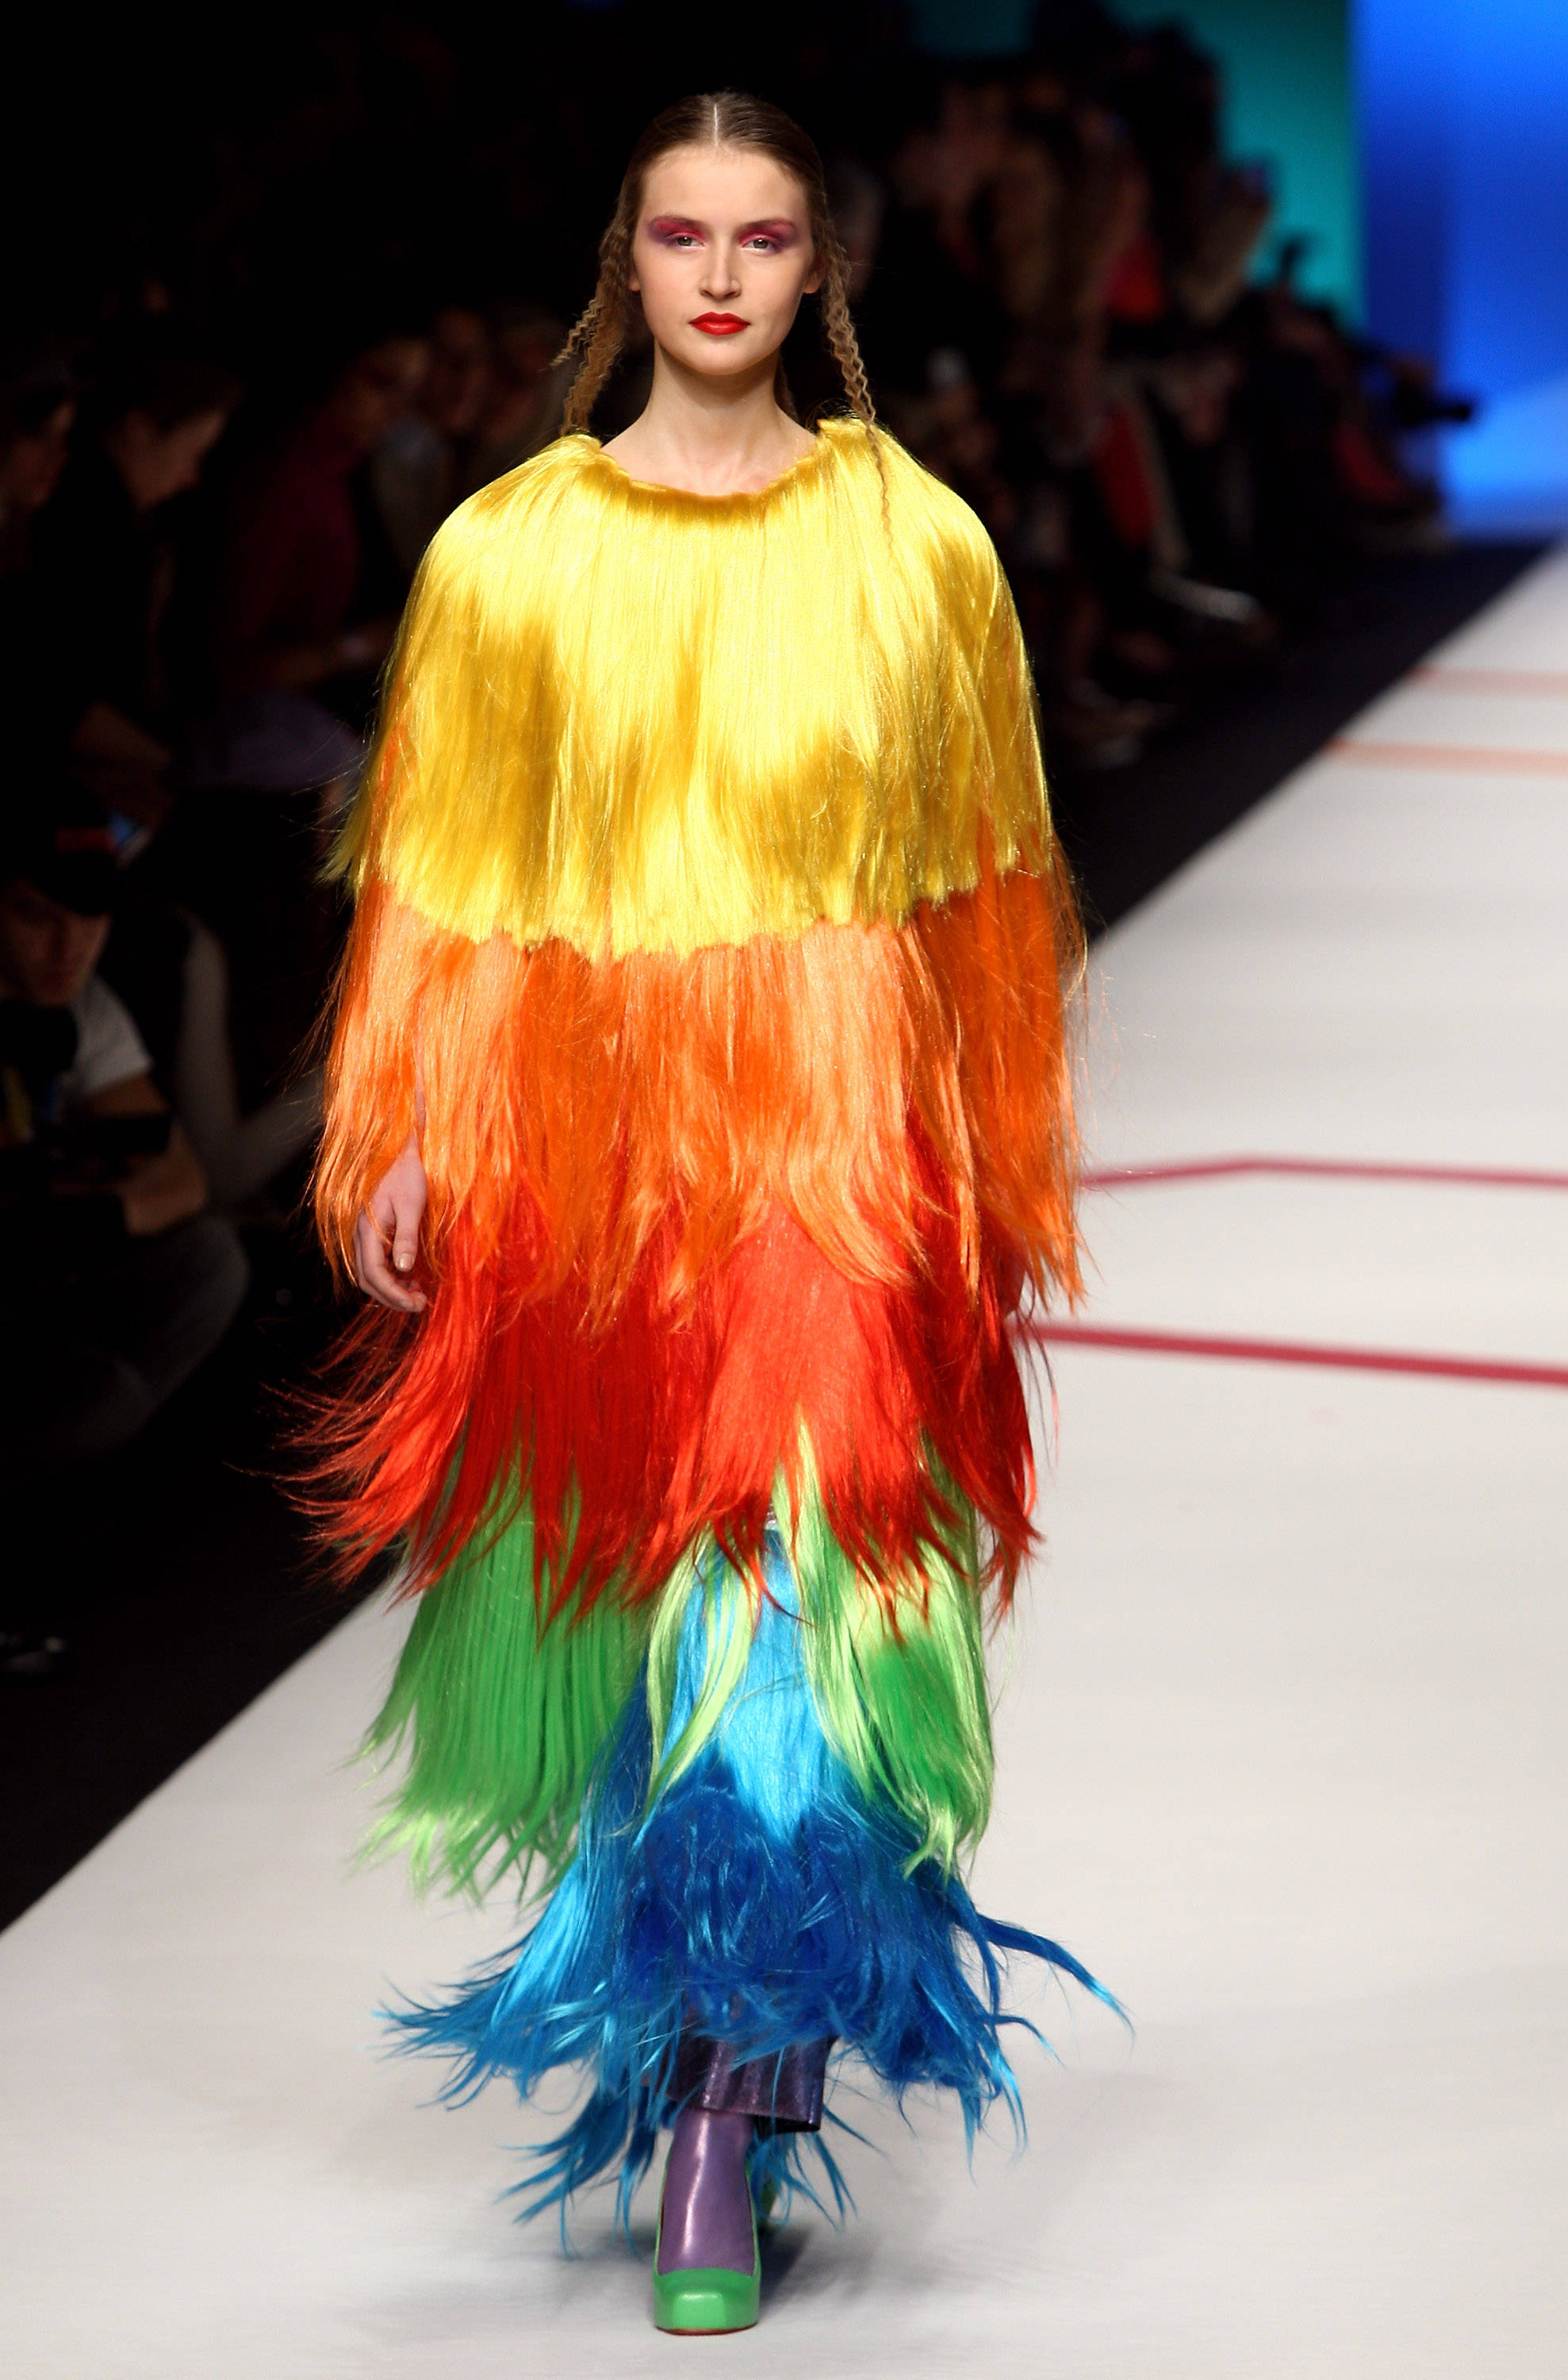 Agatha Ruiz De La Prada: Milan Fashion Week Womenswear A/W 2009 - Runway